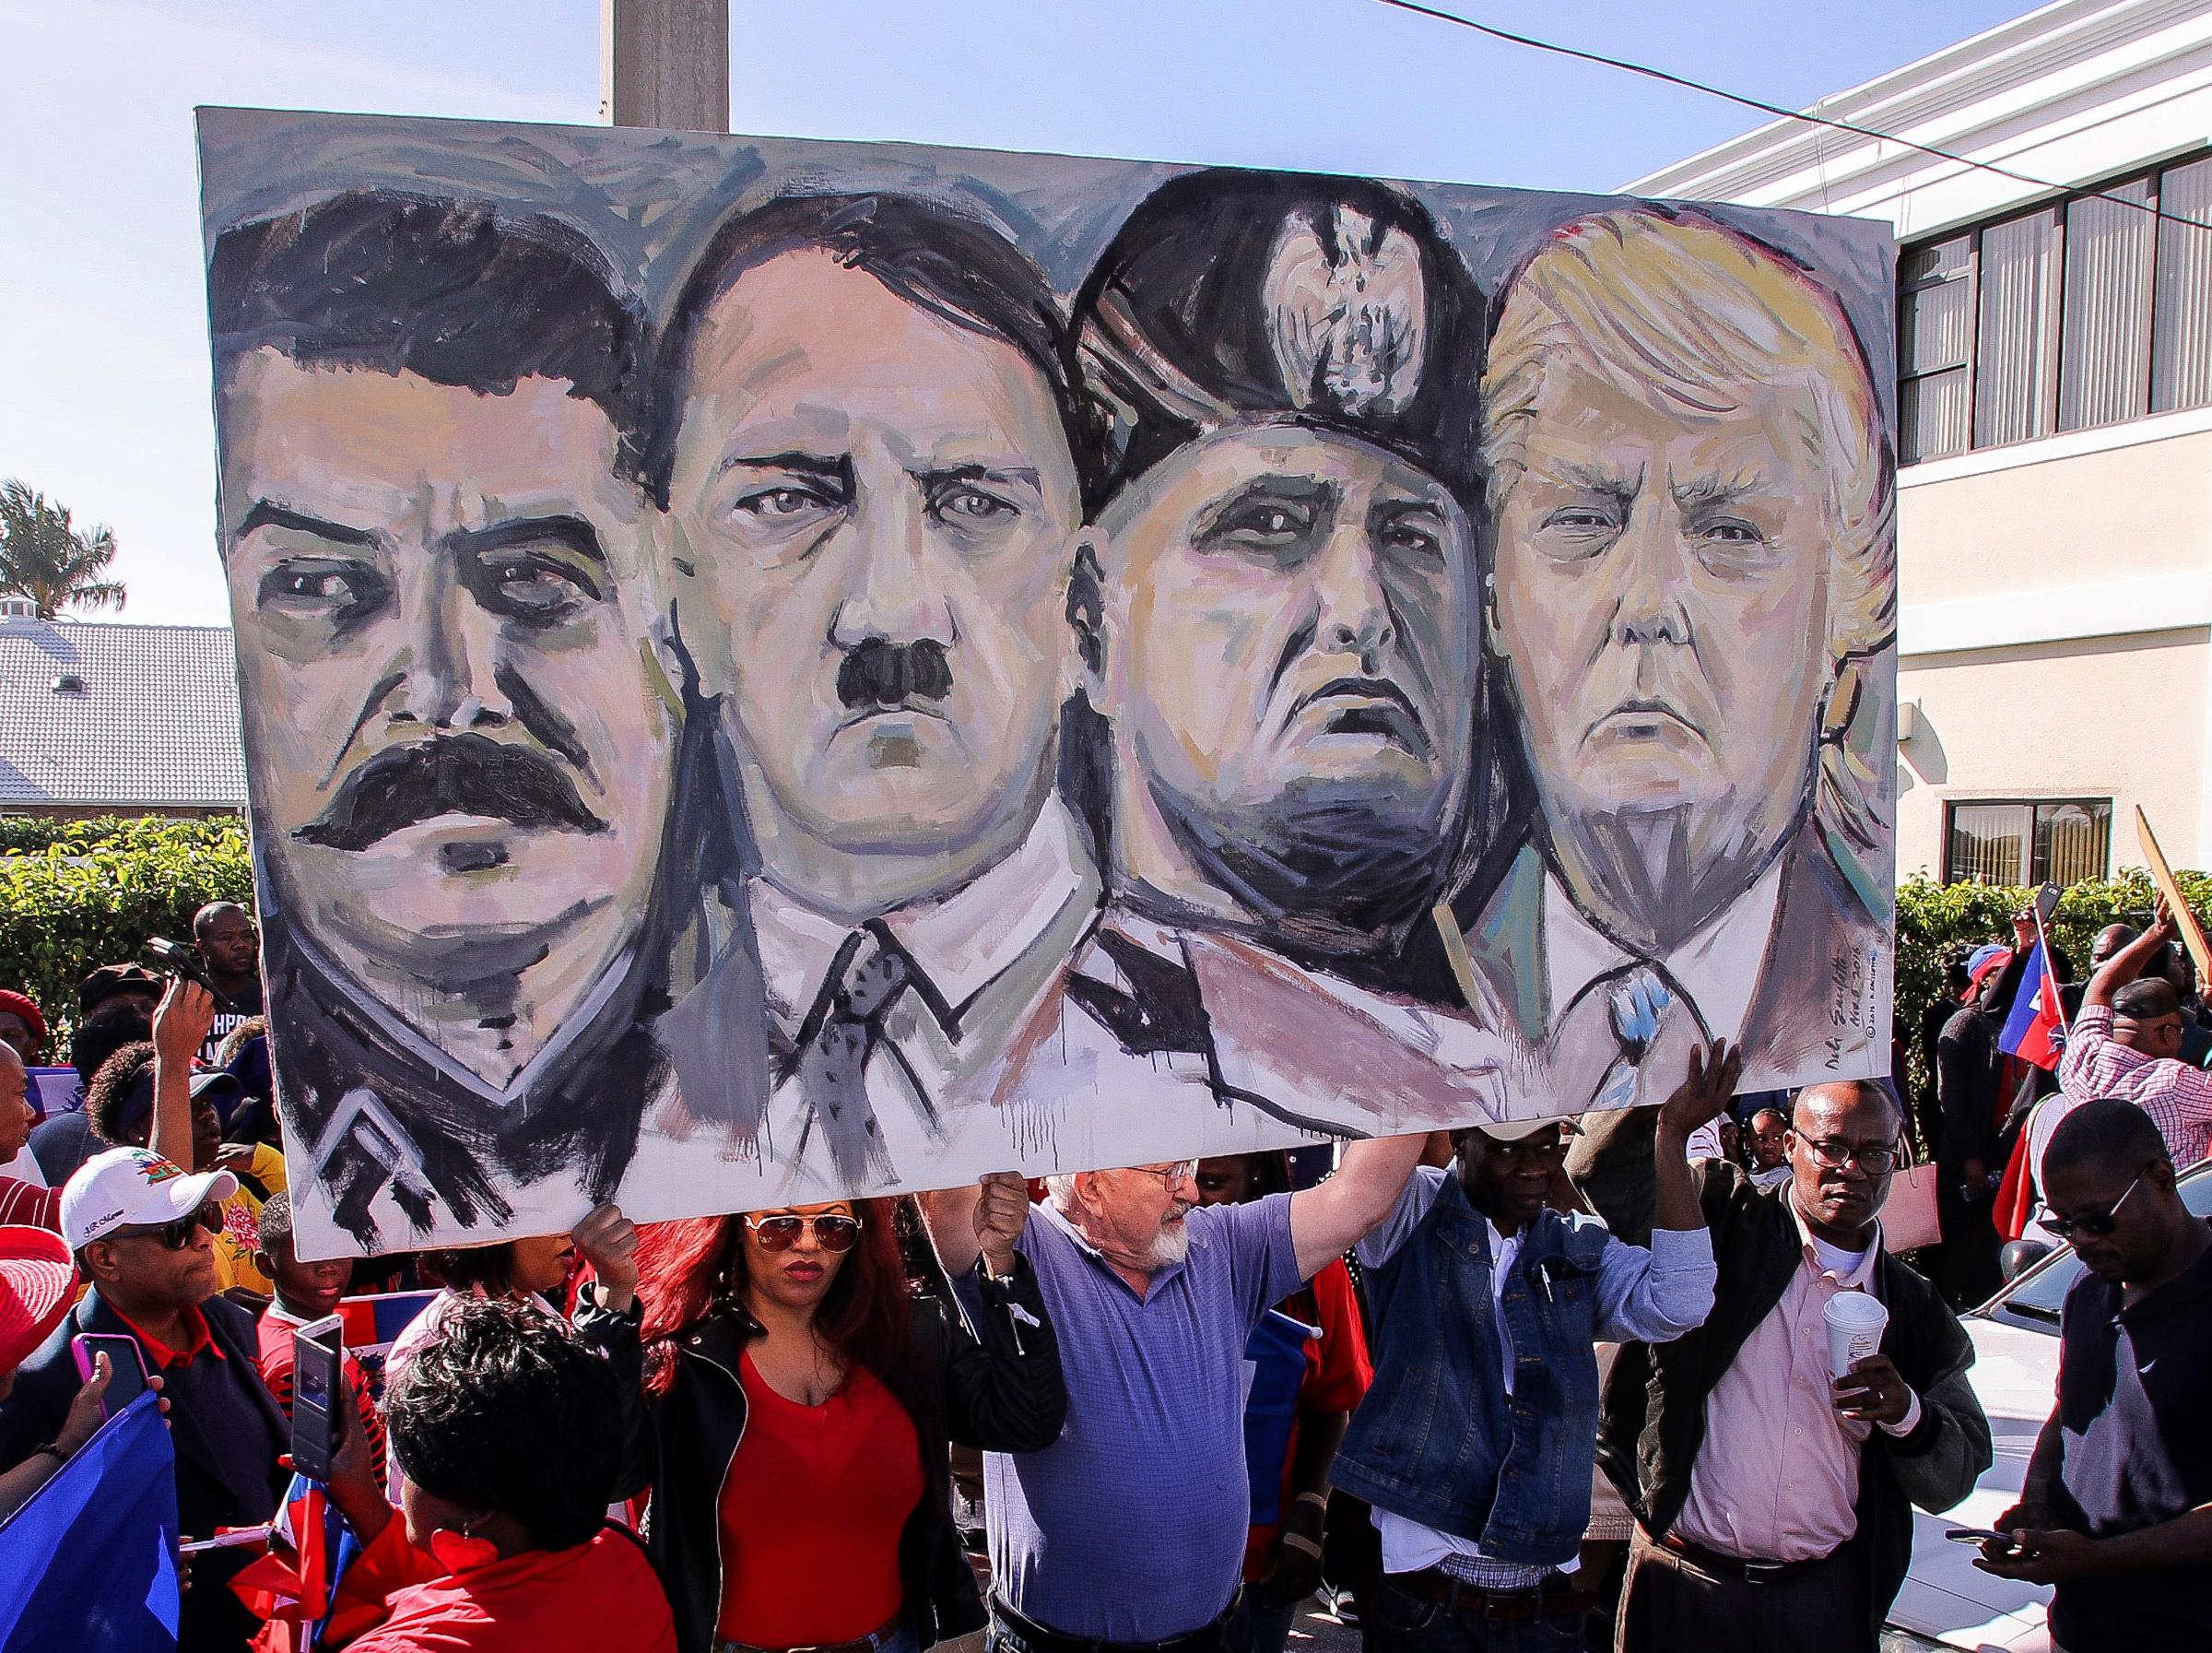 Haitian community members hold an image depicting image shows from left, Joseph Stalin, Adolf Hitler, Benito Mussolini and President Donald Trump during a protest near Trump's Mar-a-Lago estate Monday, Jan. 15, 2018, in West Palm Beach, Fla. Trump is defending himself anew against accusations that he is racist, this time after recent disparaging comments about Haiti and African nations. The group said they were there to demand an apology from the Trump. (Damon Higgins/Palm Beach Post via AP)